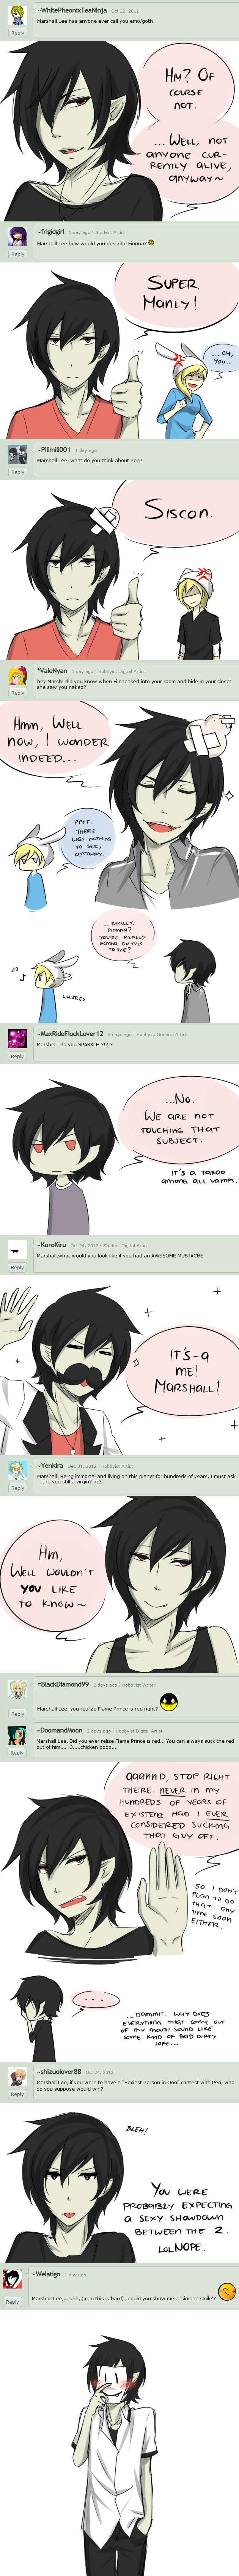 Ask Marshall Lee - Dump 2 by Katkat-Tan